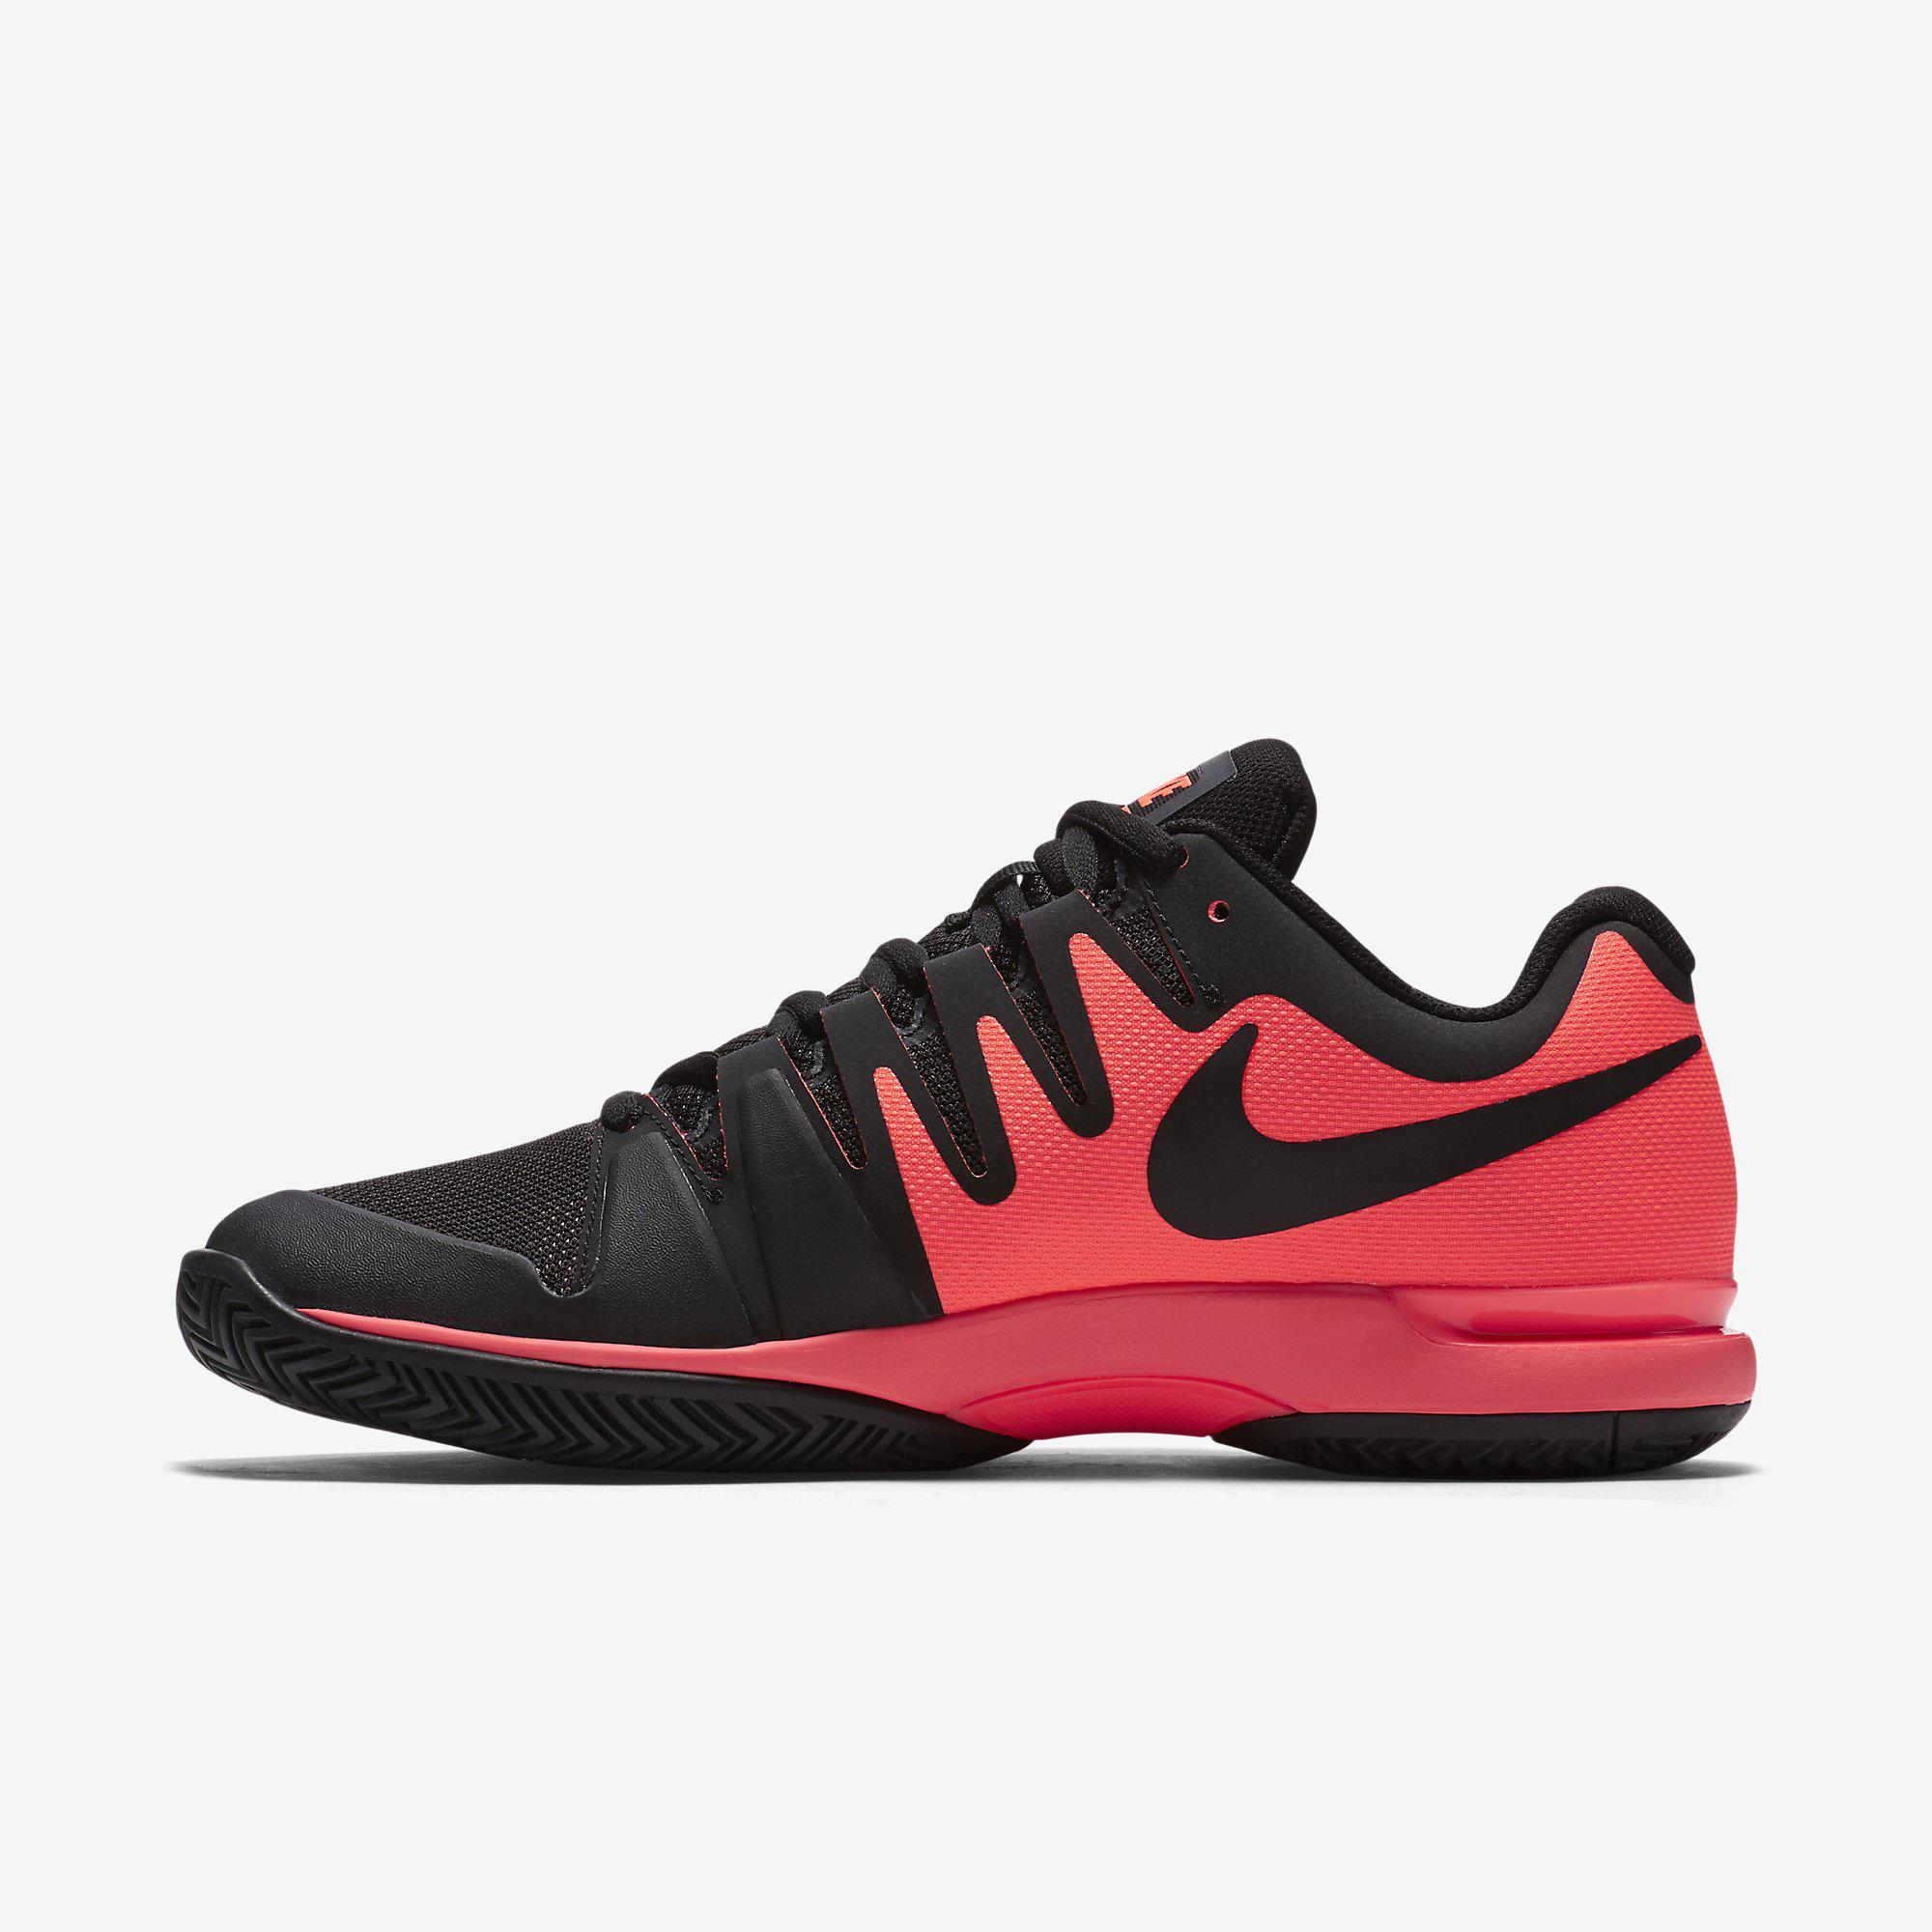 fb9c8a680b30 Nike Mens Zoom Vapor 9.5 Tour Tennis Shoes - Hot Lava Black ...